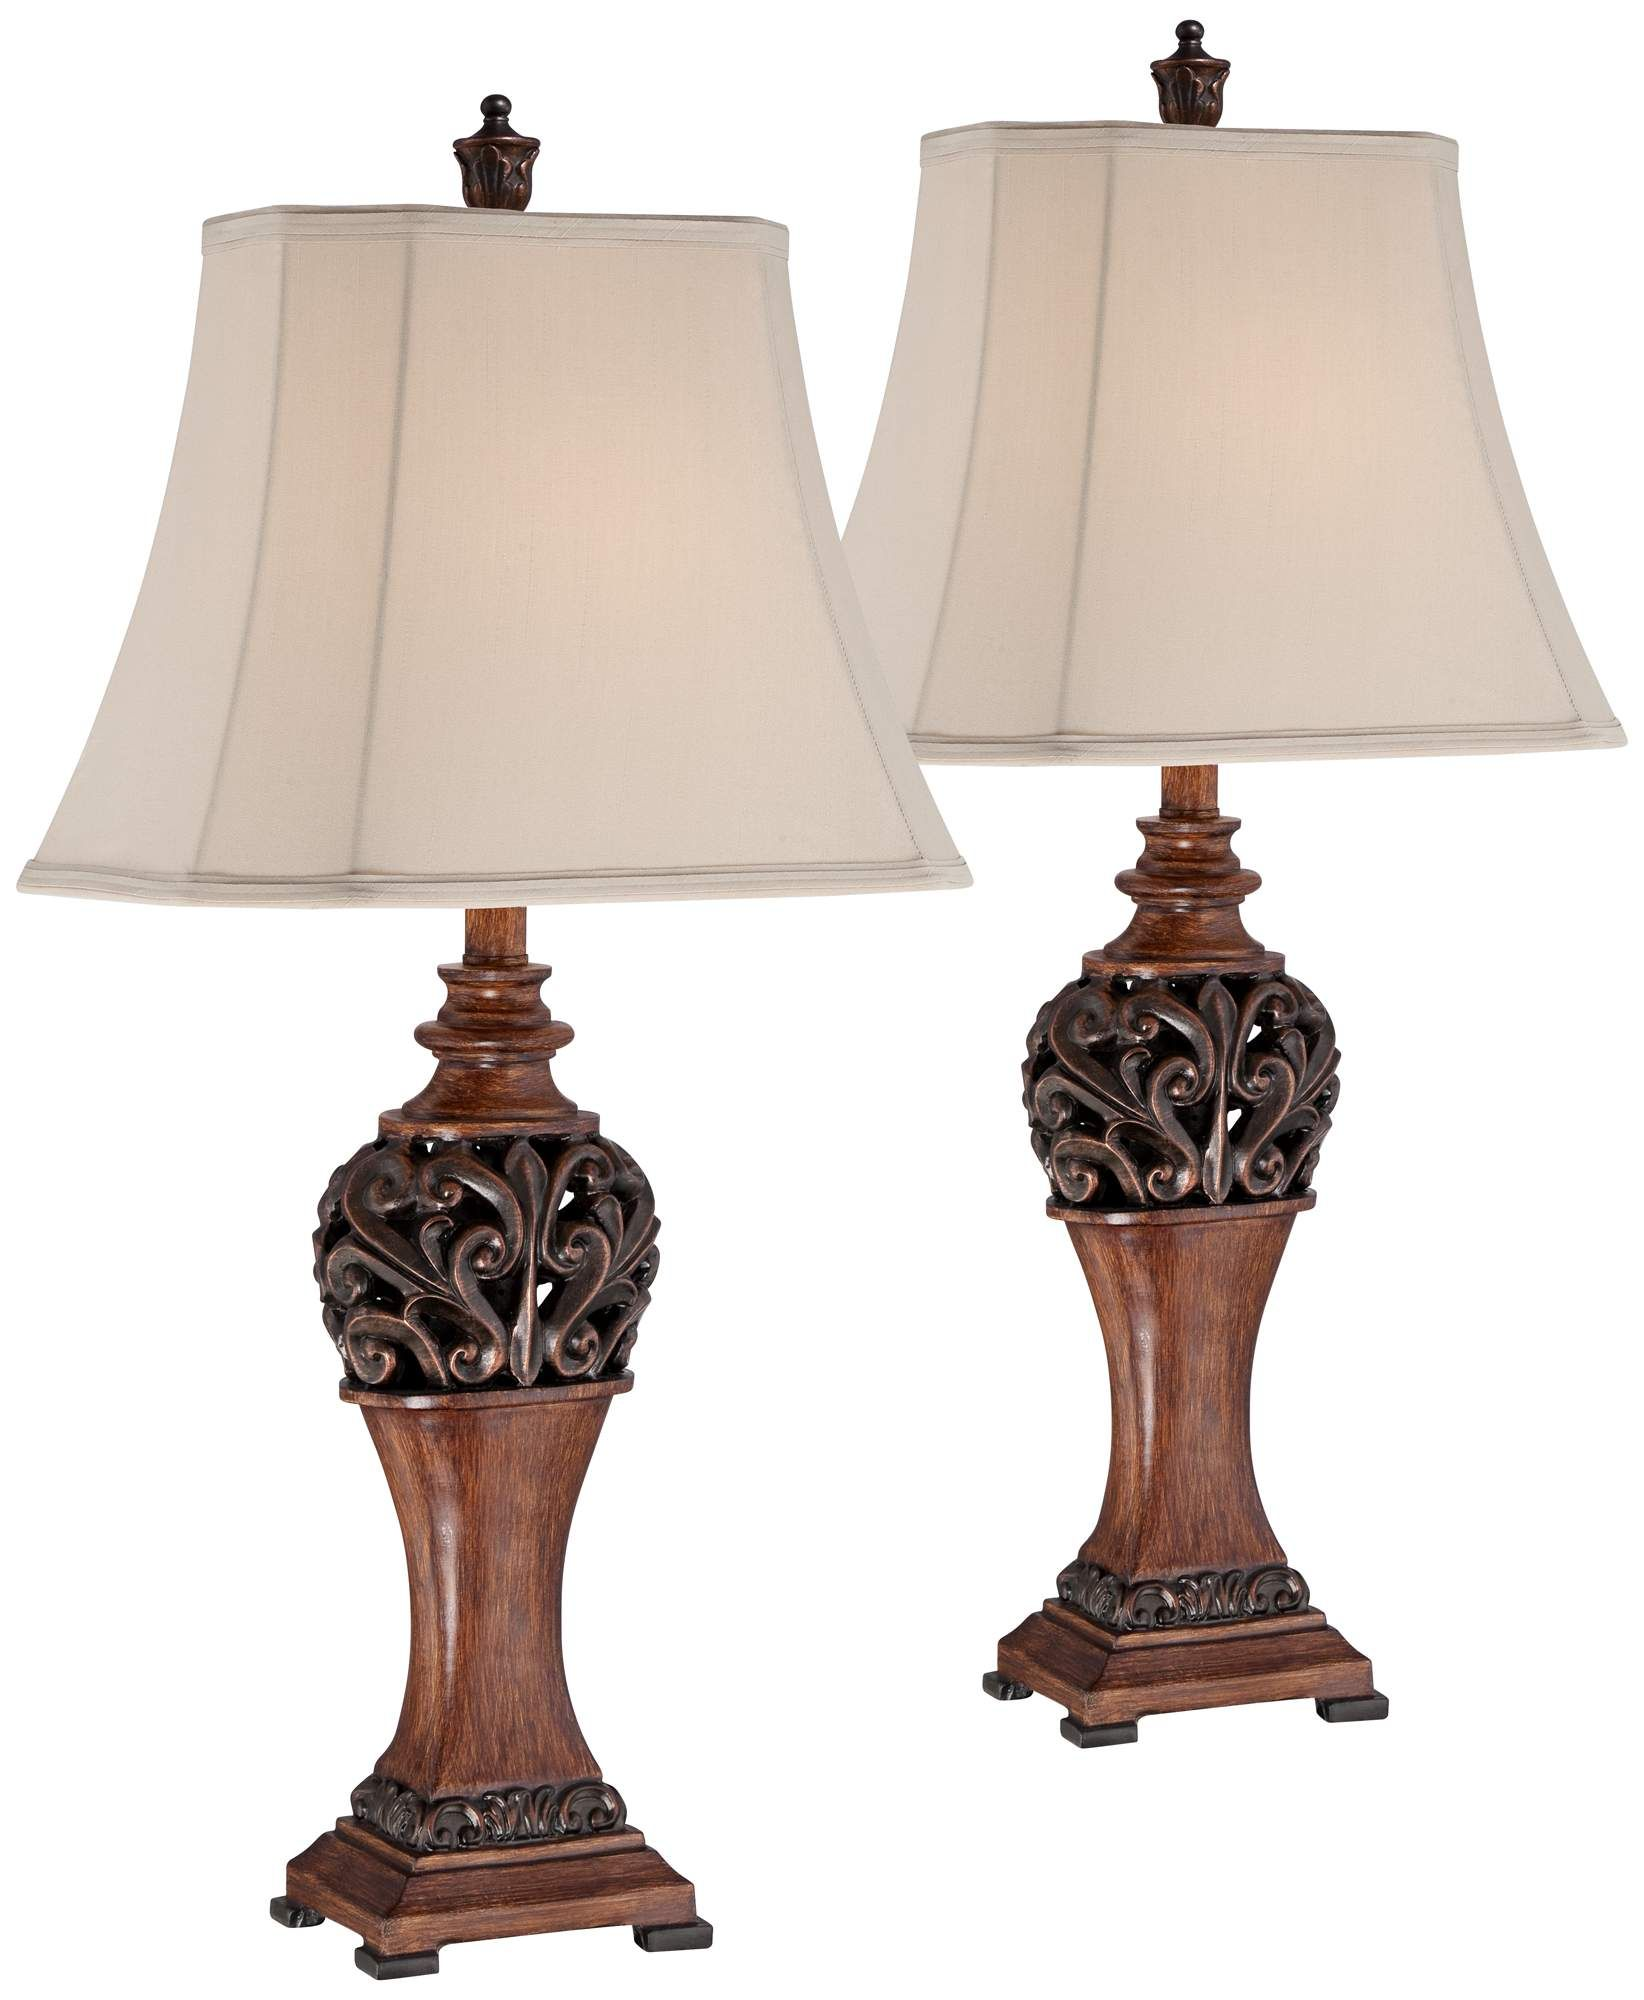 Table Lamps Exeter 30 High Wood Finish Table Lamps Set Of 2 Table Lamp Wood Traditional Table Lamps Bronze Table Lamp